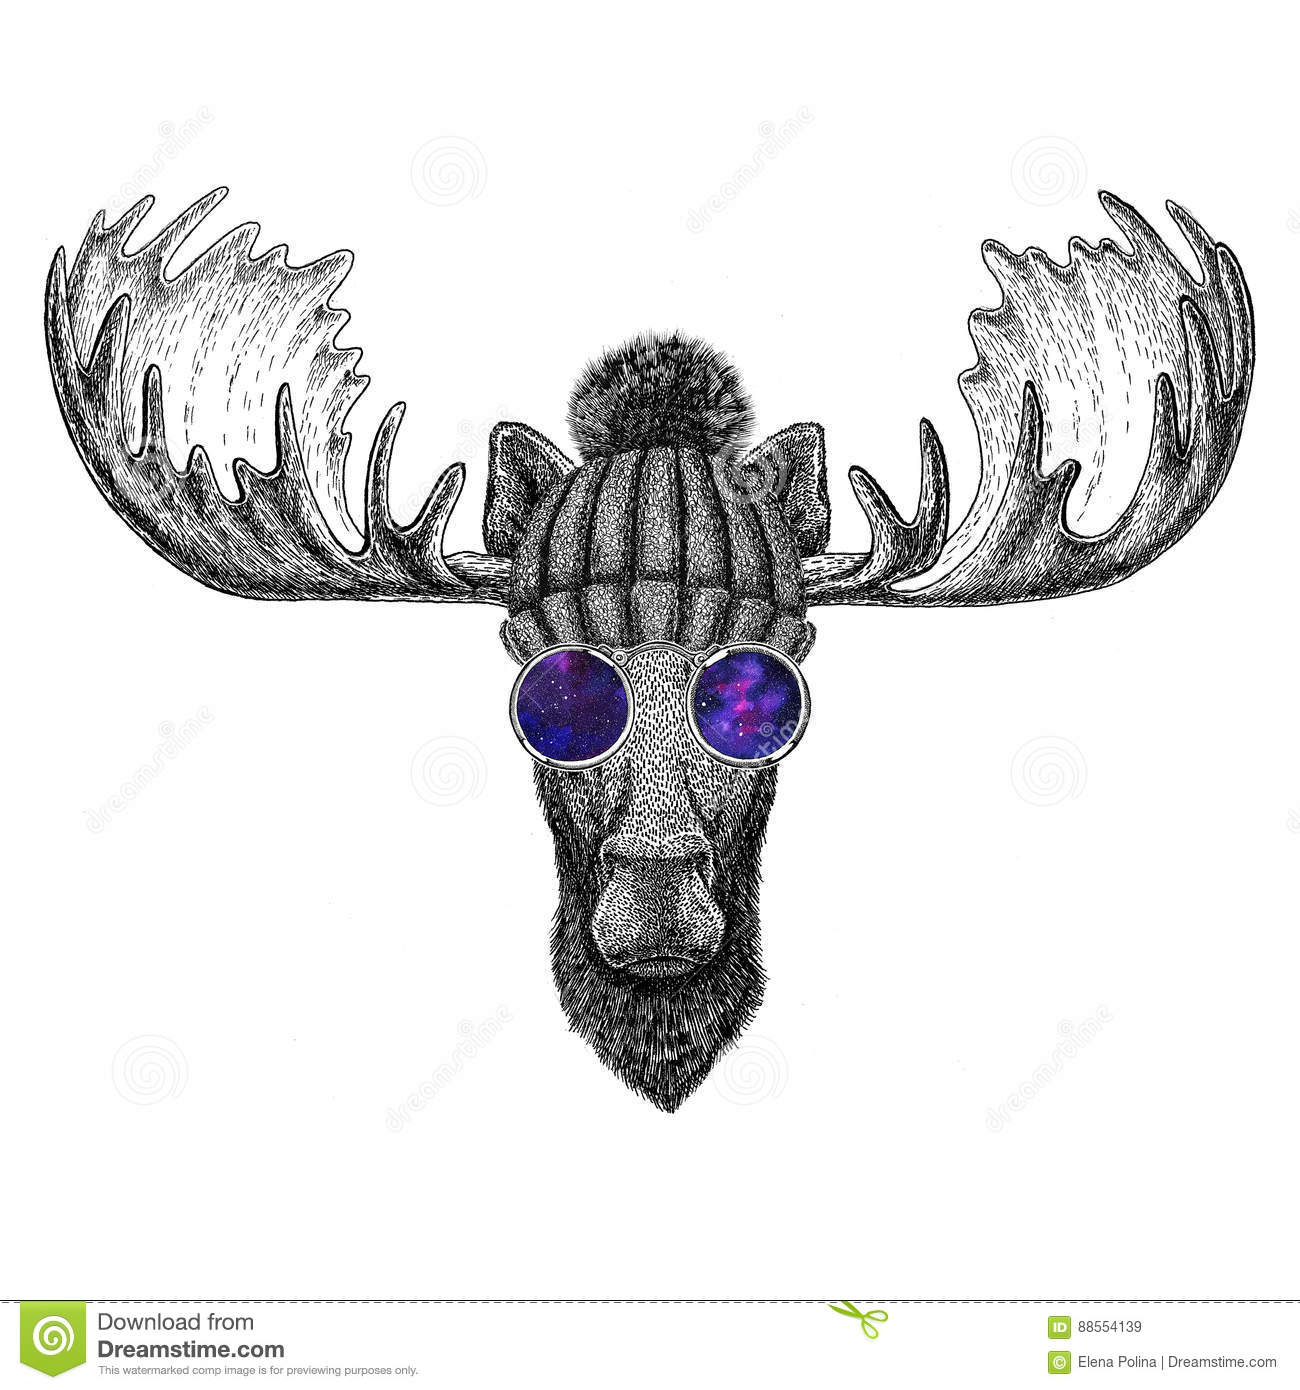 hipster moose elk wearing knitted hat and glasses image